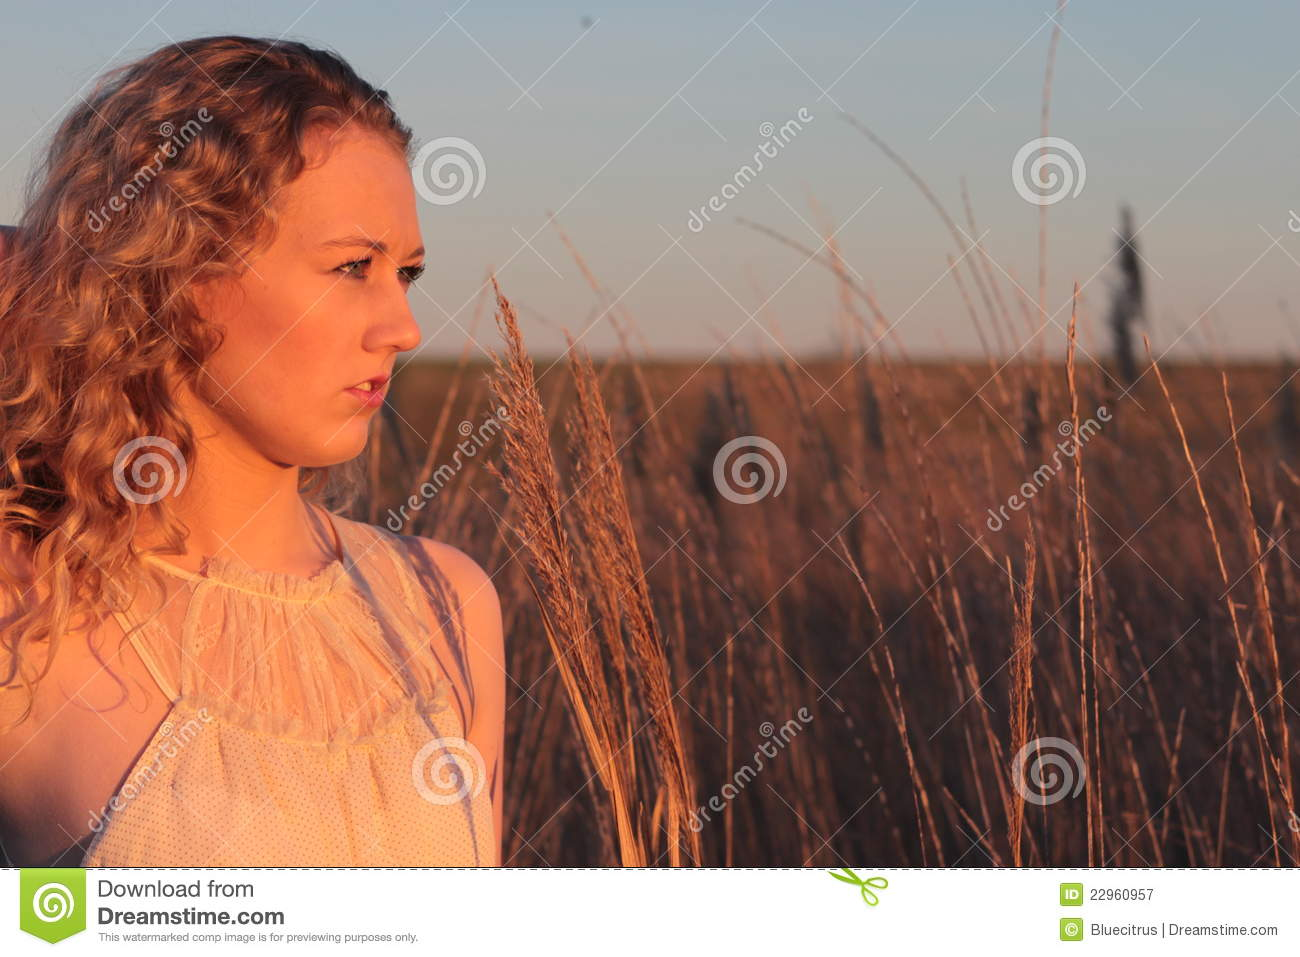 Golden Hour Portrait Royalty Free Stock Photography